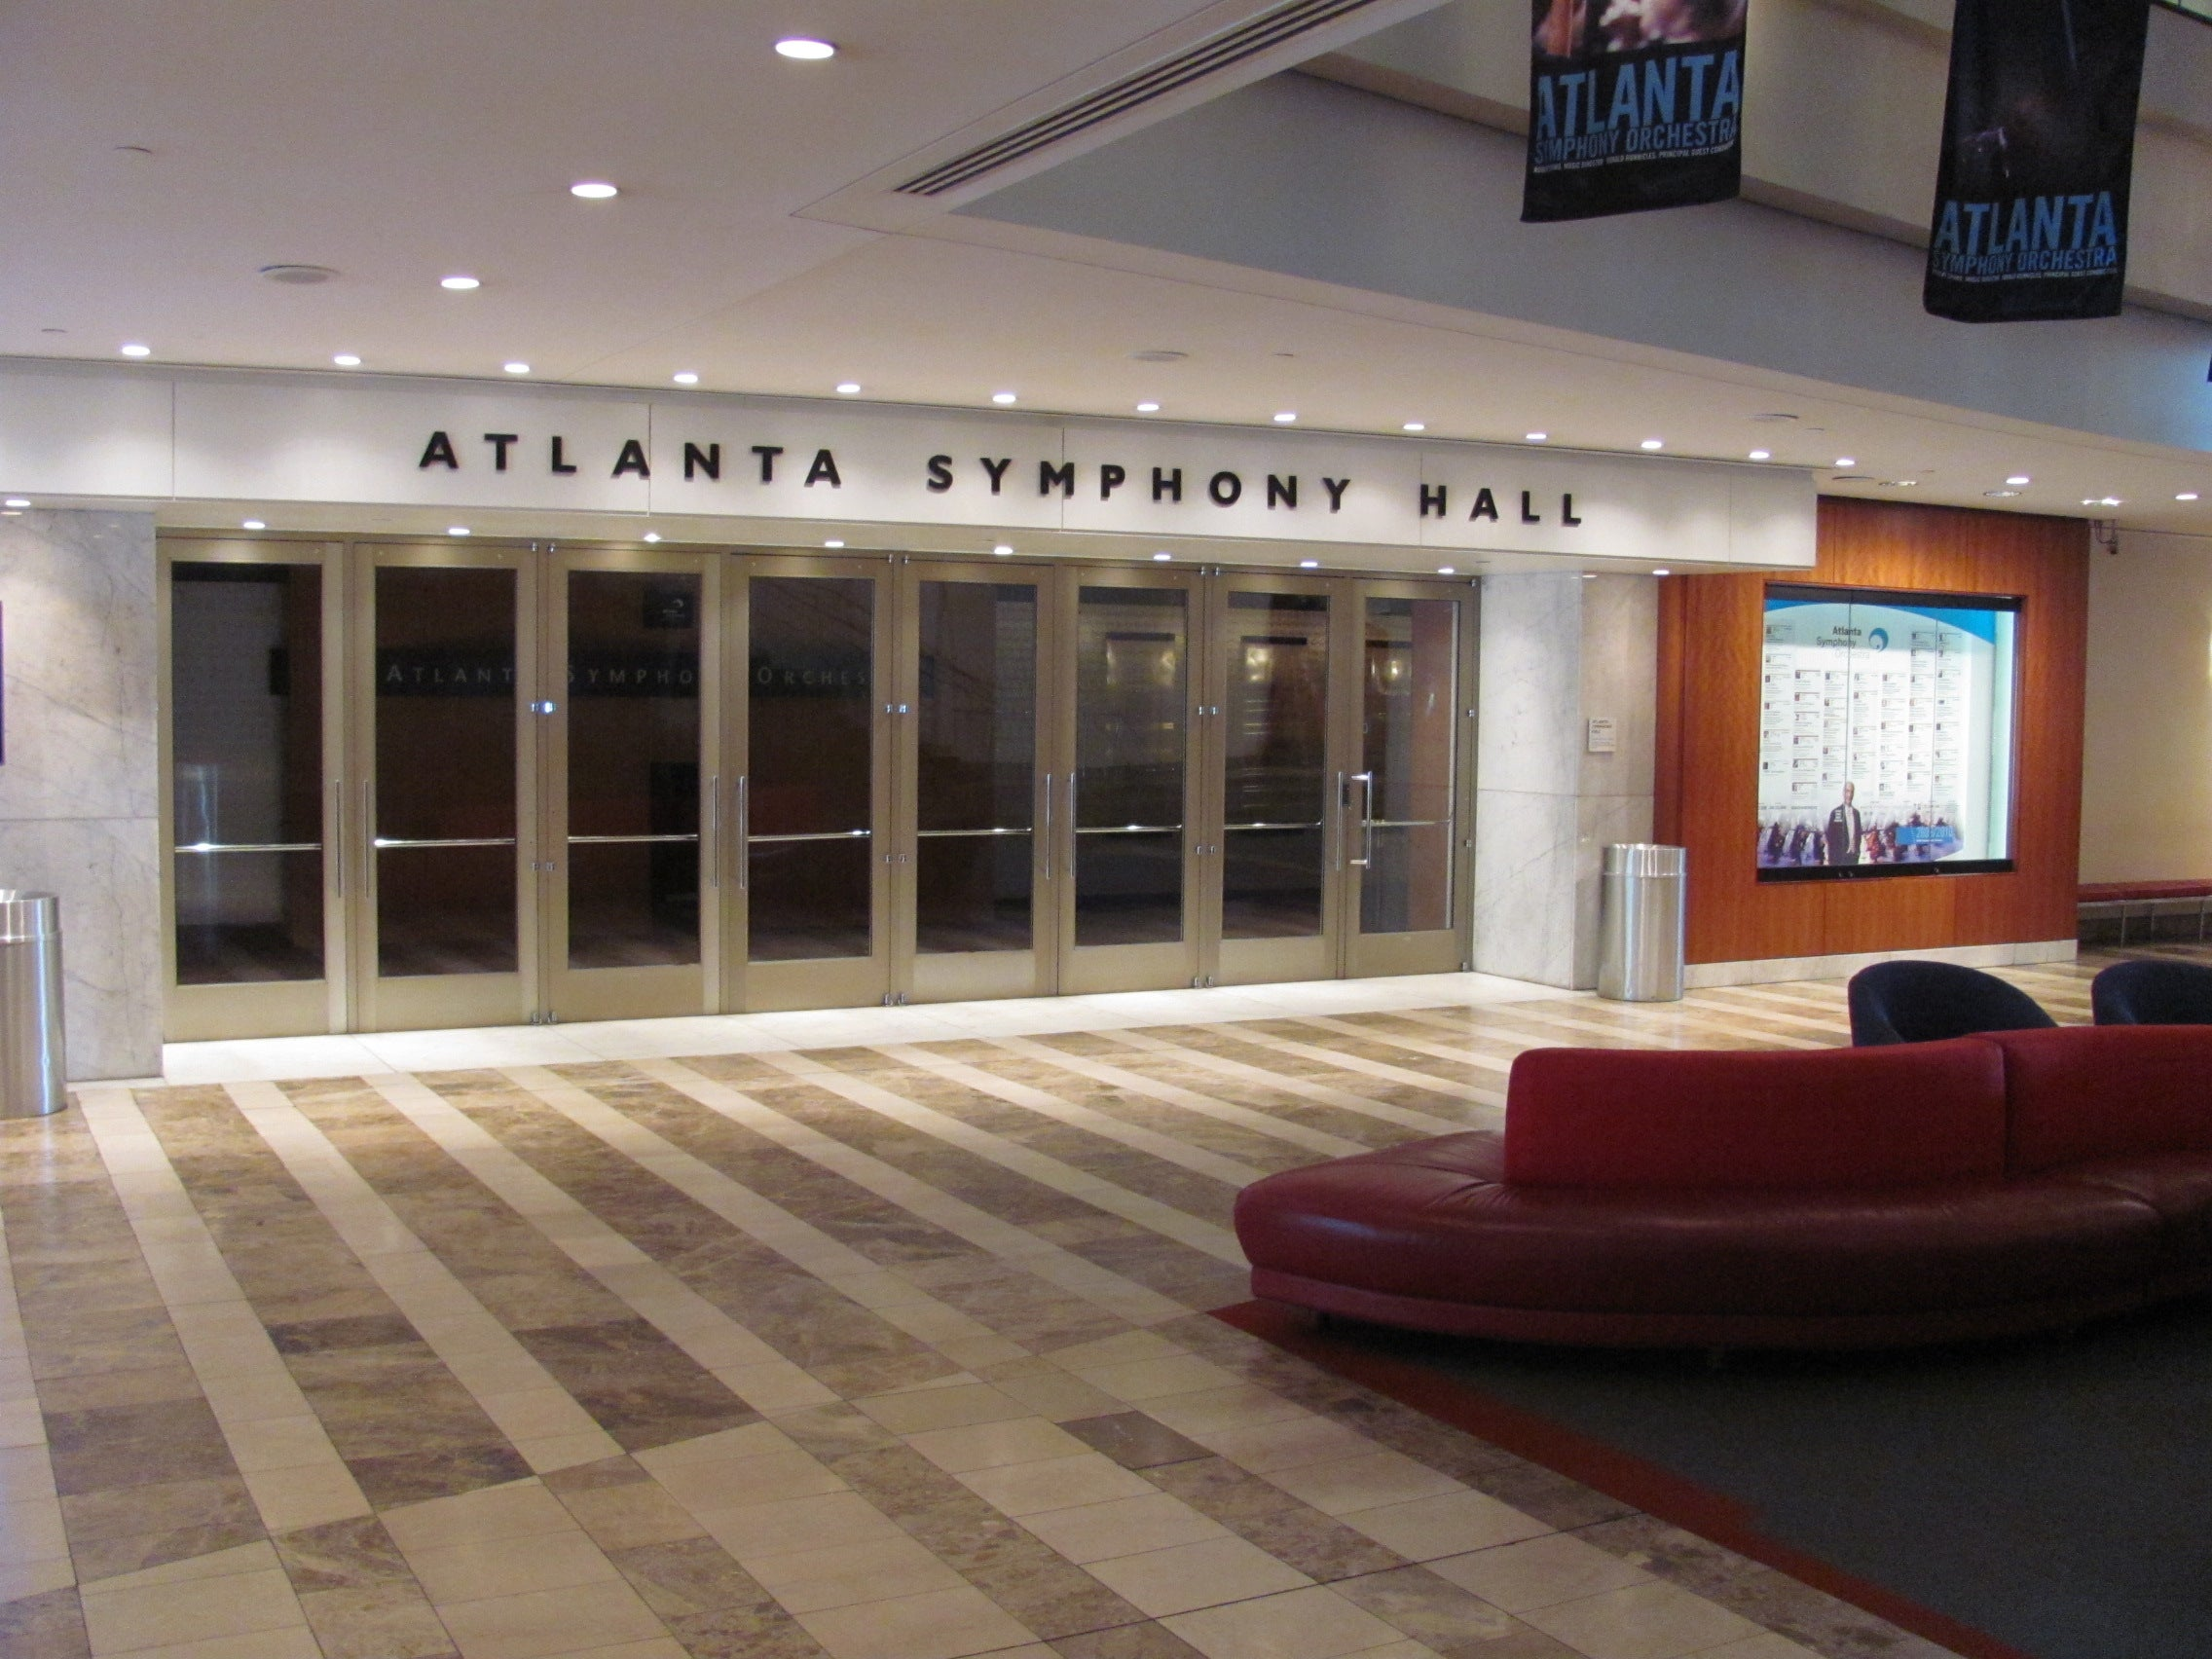 Atlanta Symphony Hall Tickets Schedule Seating Chart Directions